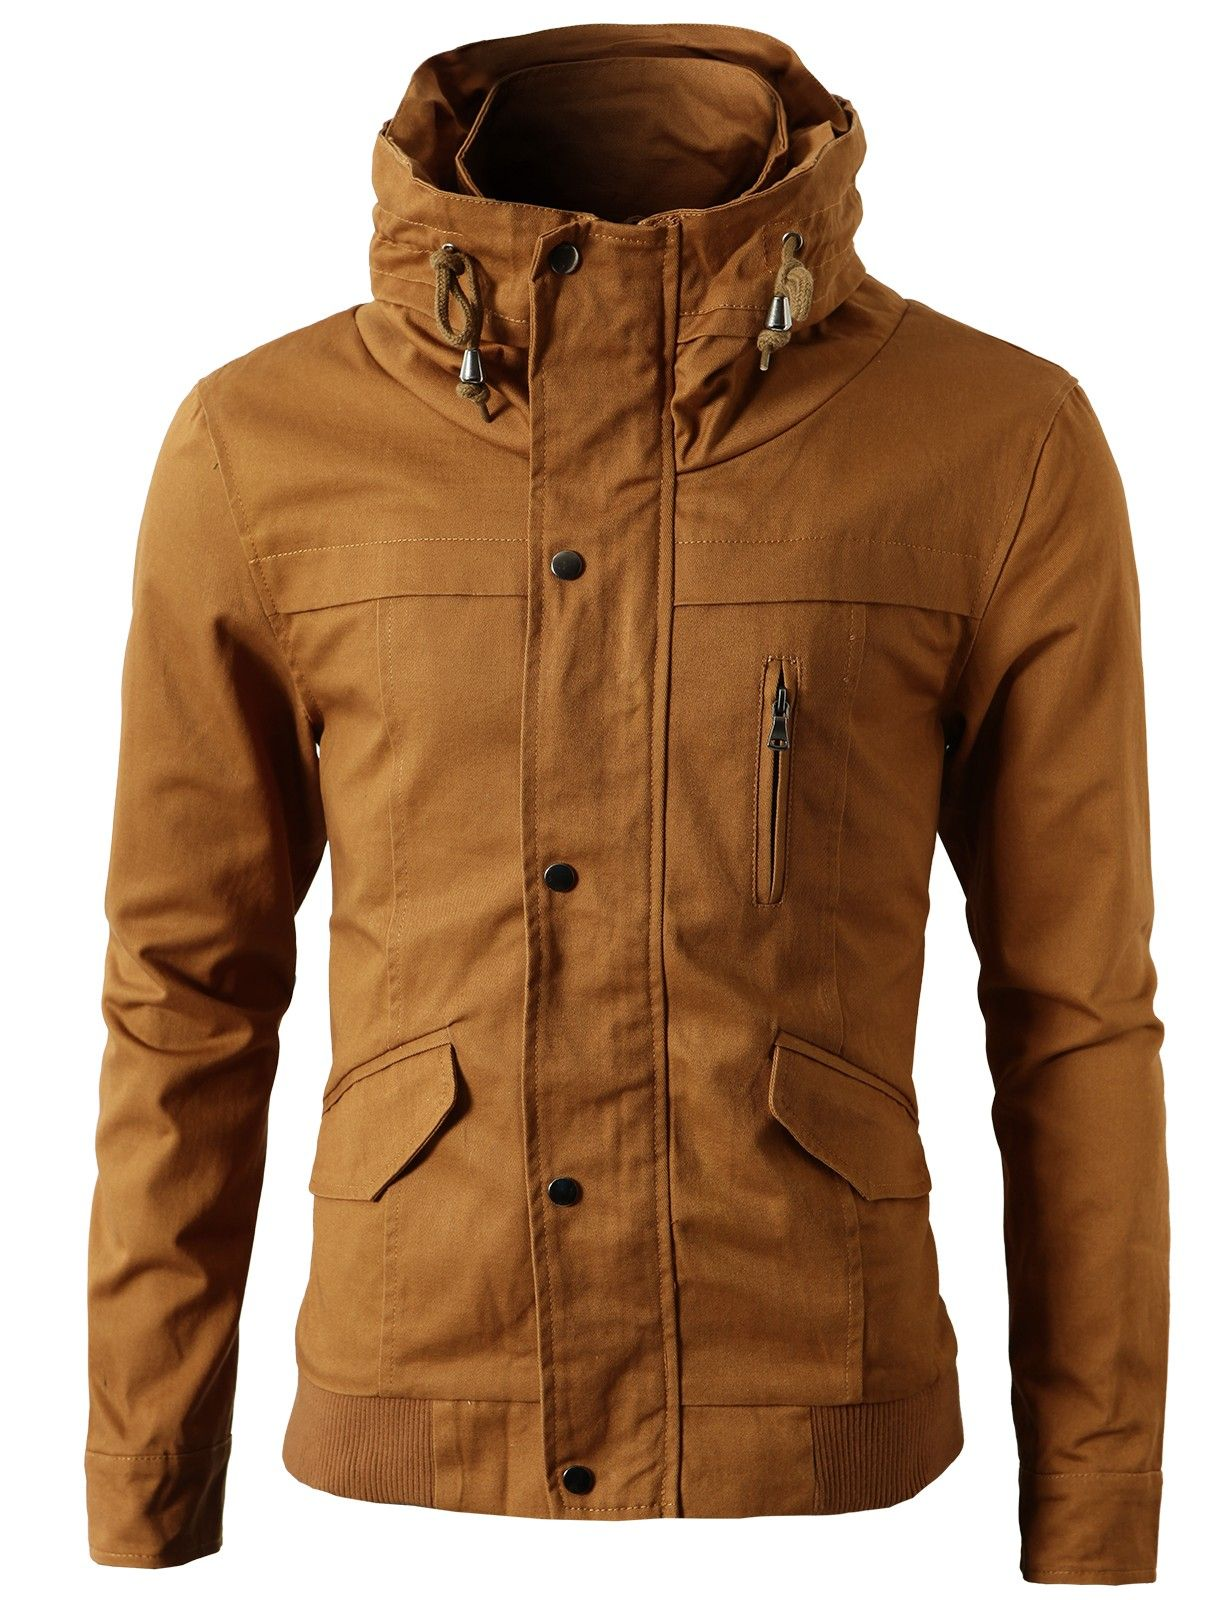 Mens High-neck Field Jackets Without Hood (KMOJA024) | General | Pinterest | Hoods .tyxgb76aj ...